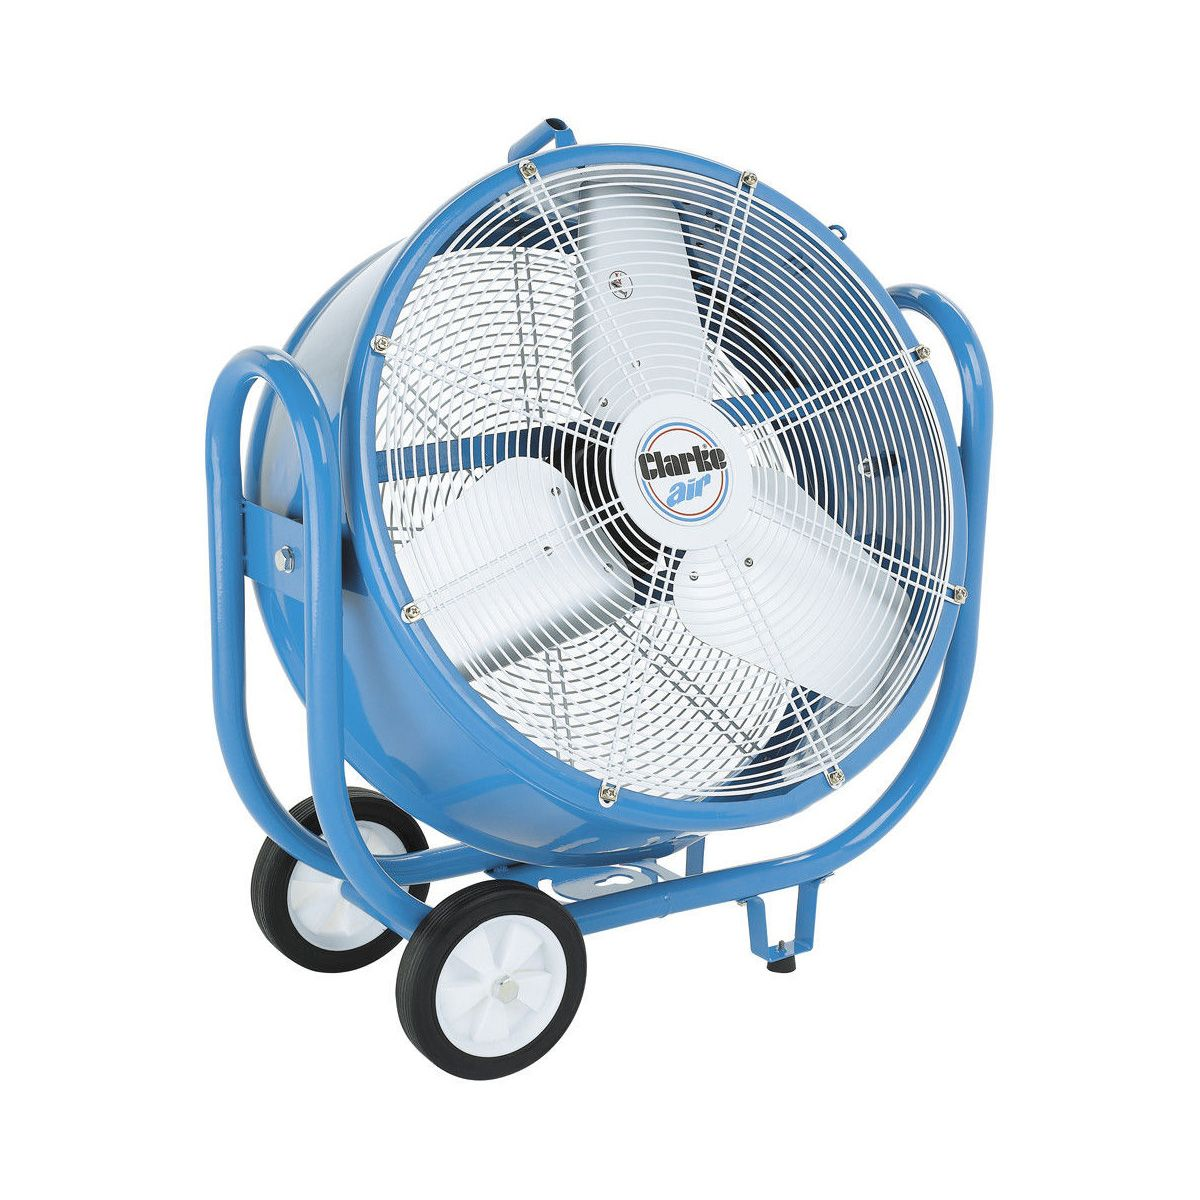 Portable Drum Fan : Clarke cam robust portable industrial electric drum